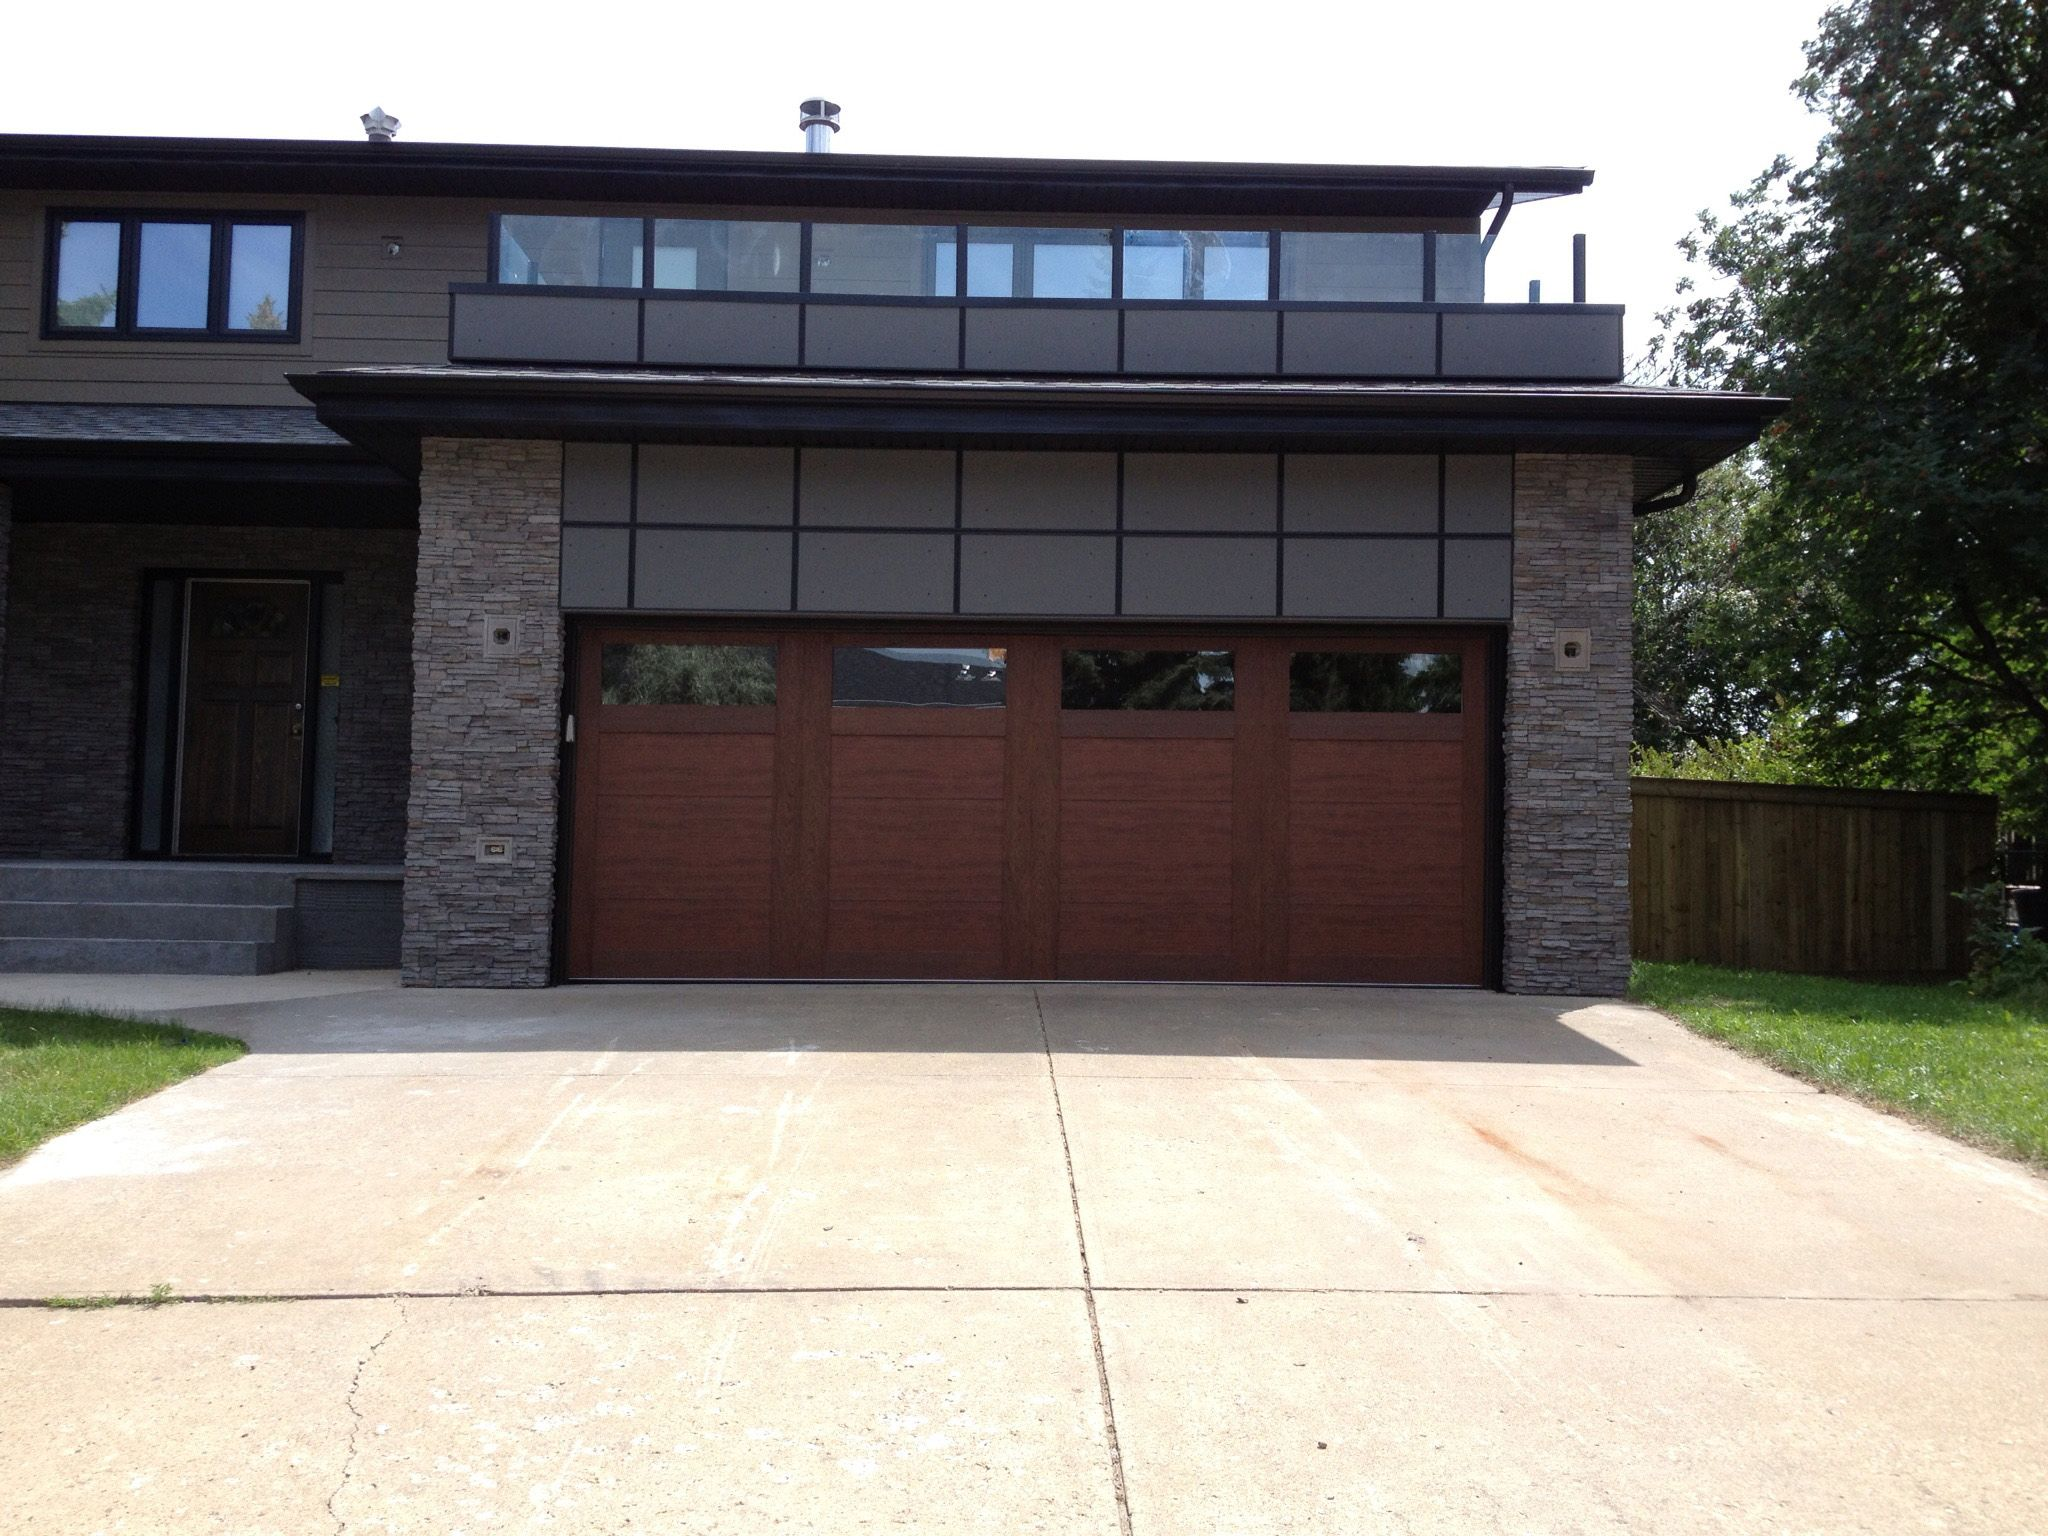 A stained steel garage door adds warmth to this contemporary home knight door services did a garage door installation in edmonton alberta and what a turned out to be a beauty rubansaba